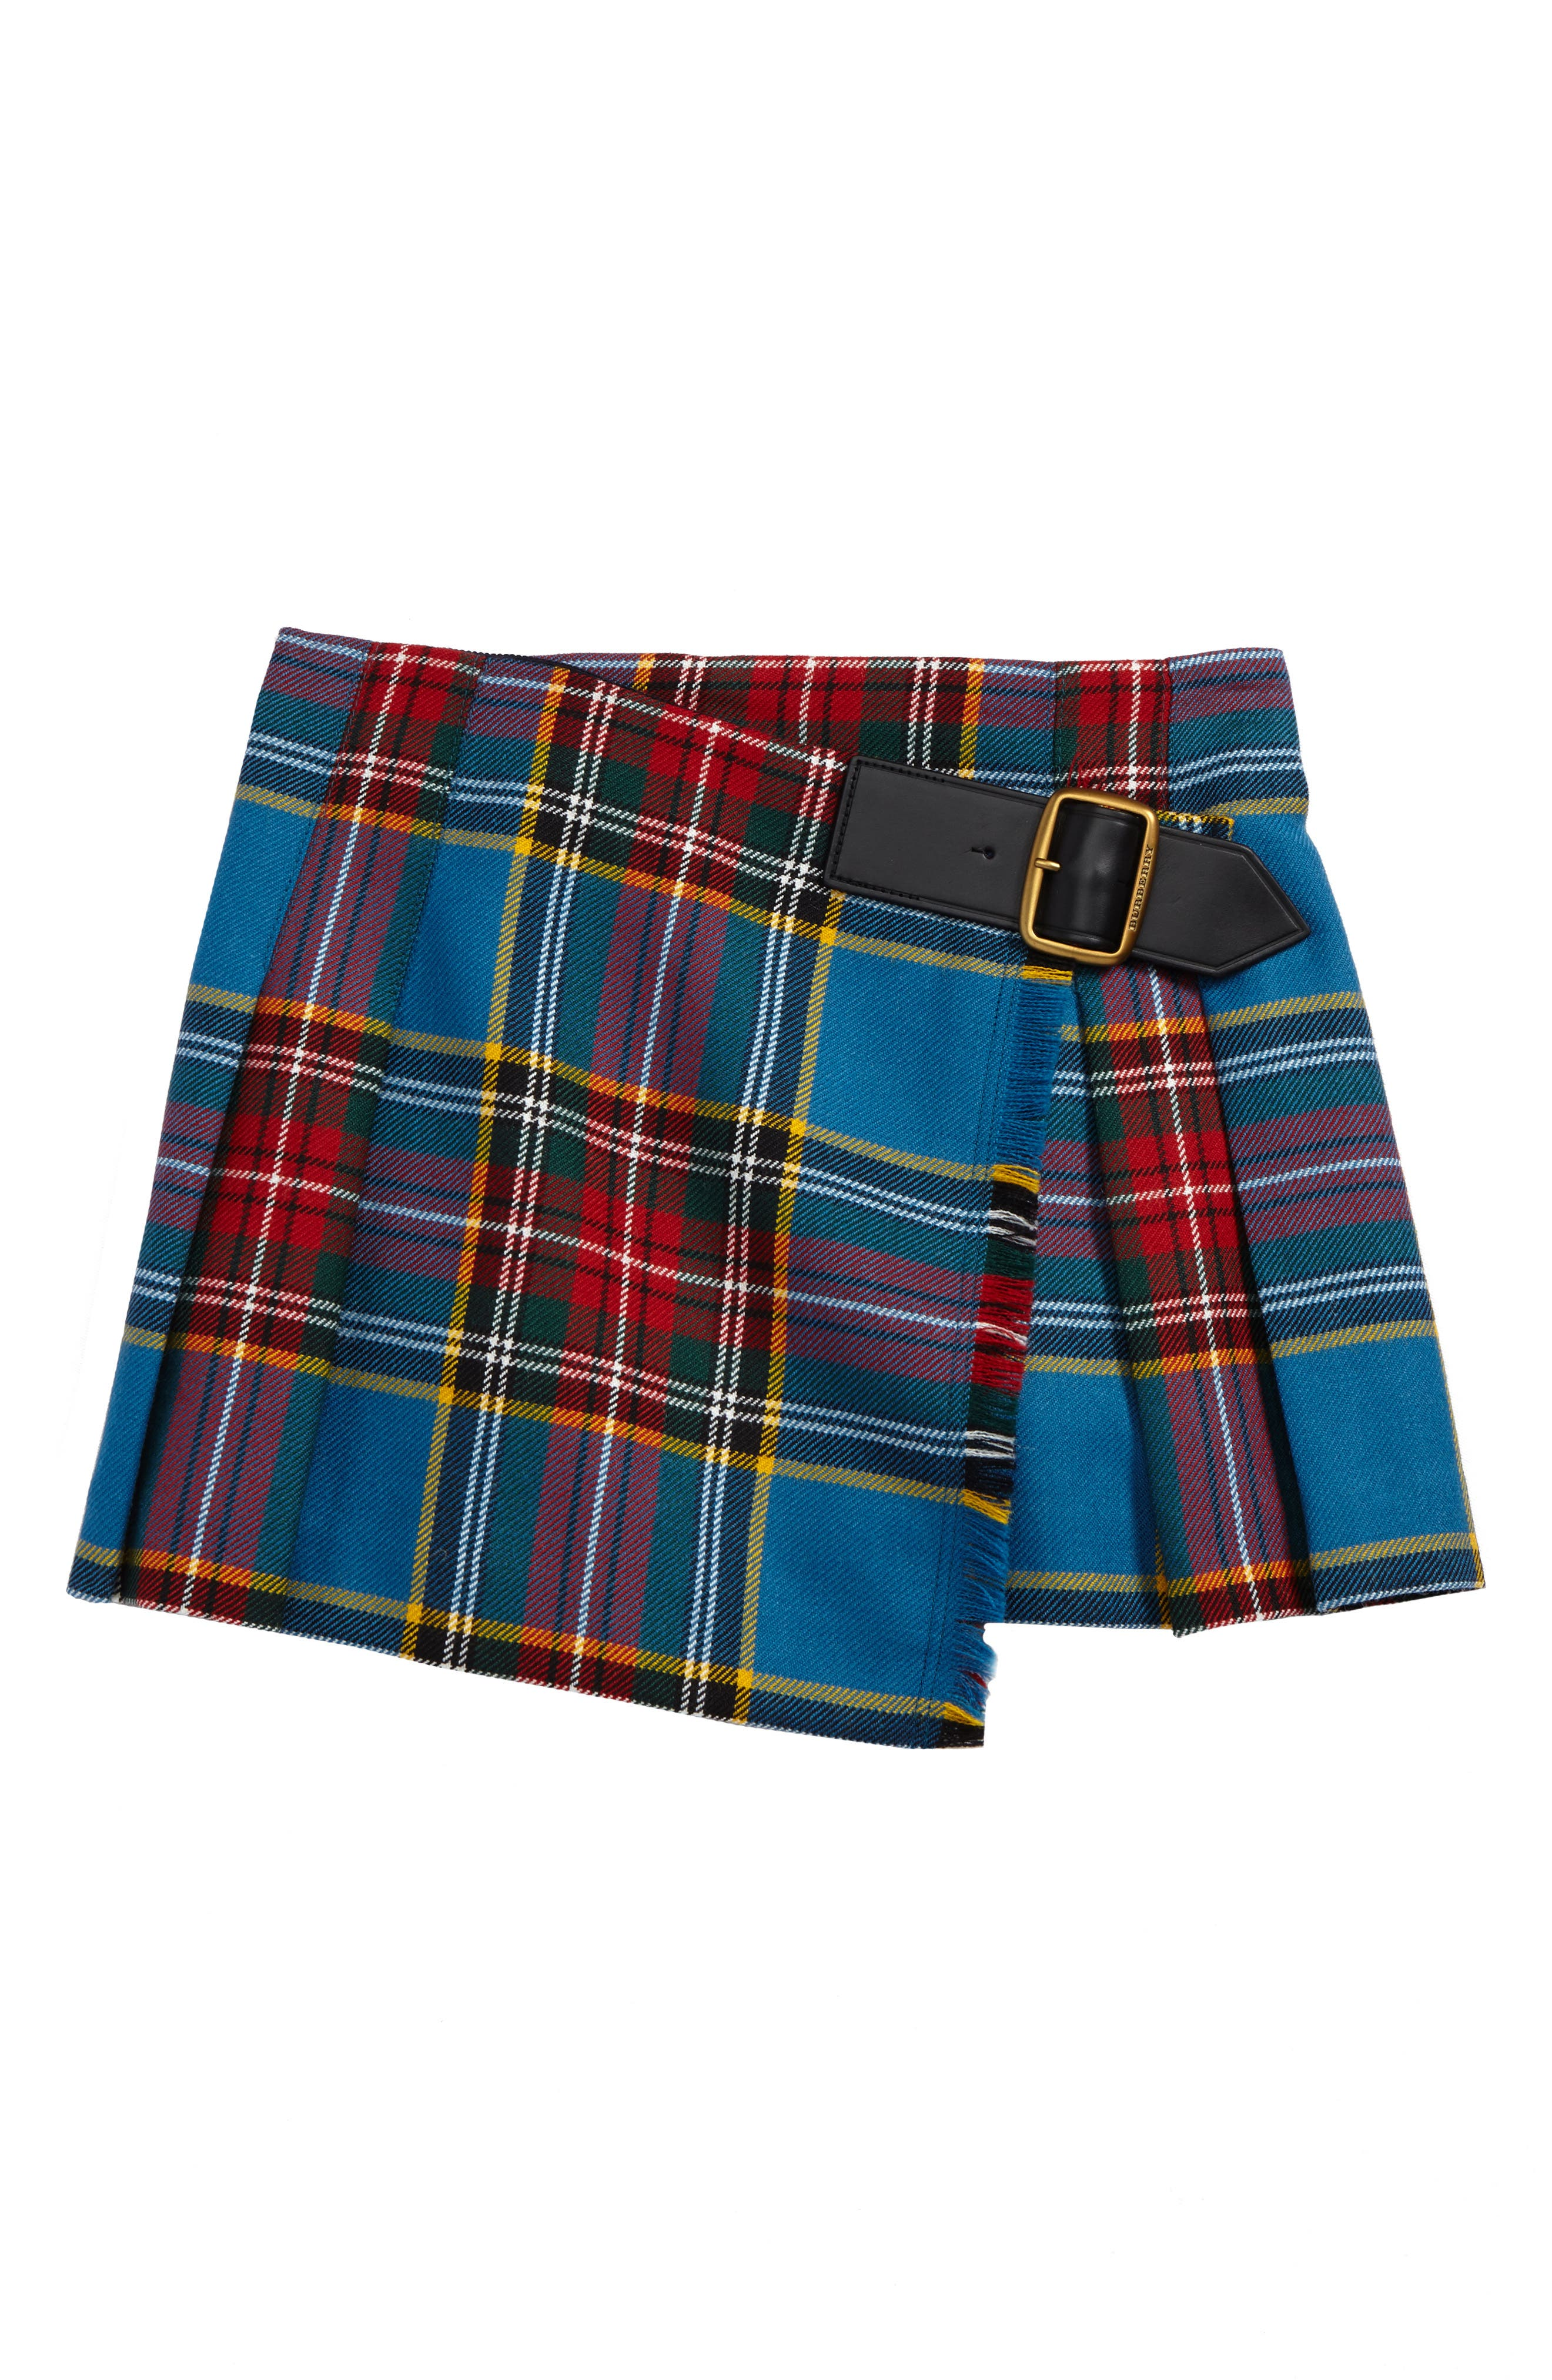 Klorrie Plaid Wool Miniskirt,                         Main,                         color, 439